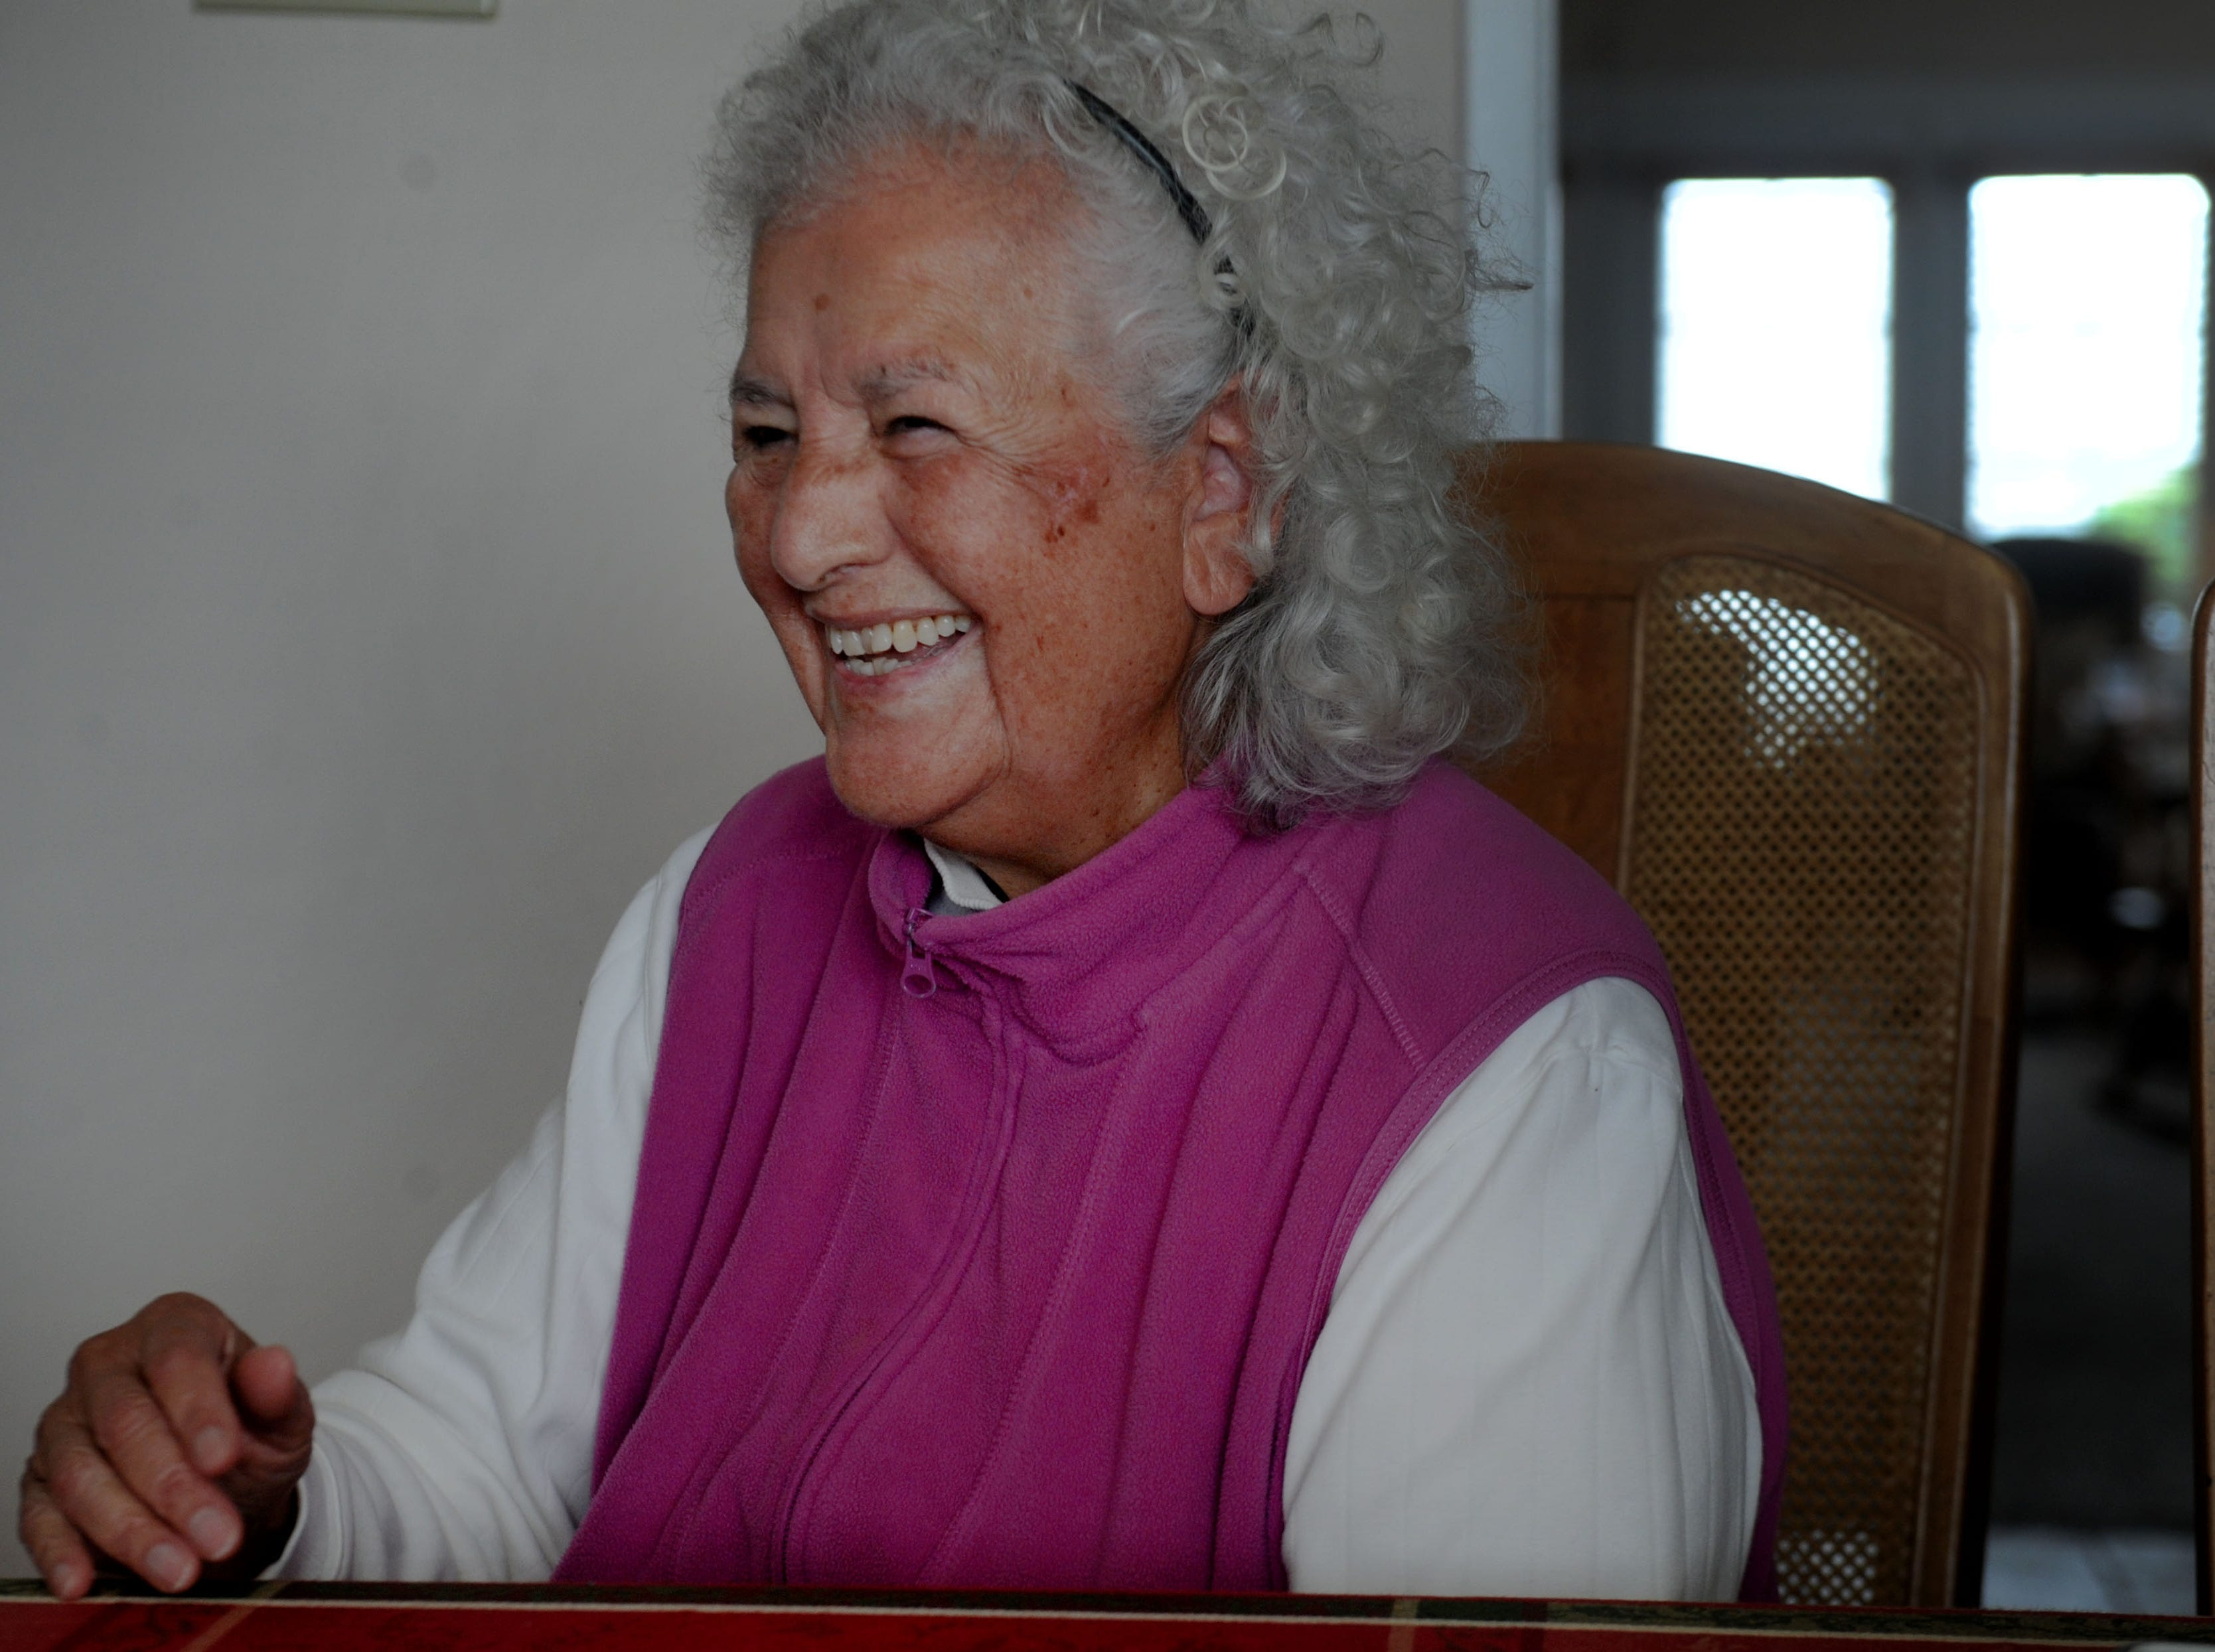 Oxnard activist Lupe Anguiano laughs a little as she looks back on her life. Anguiano, who turns 90 this week, is a founding member of the National Women's Political Caucus working alongside Gloria Steinem, Bella Abzug, Jean Stapleton, and Coretta Scott King.